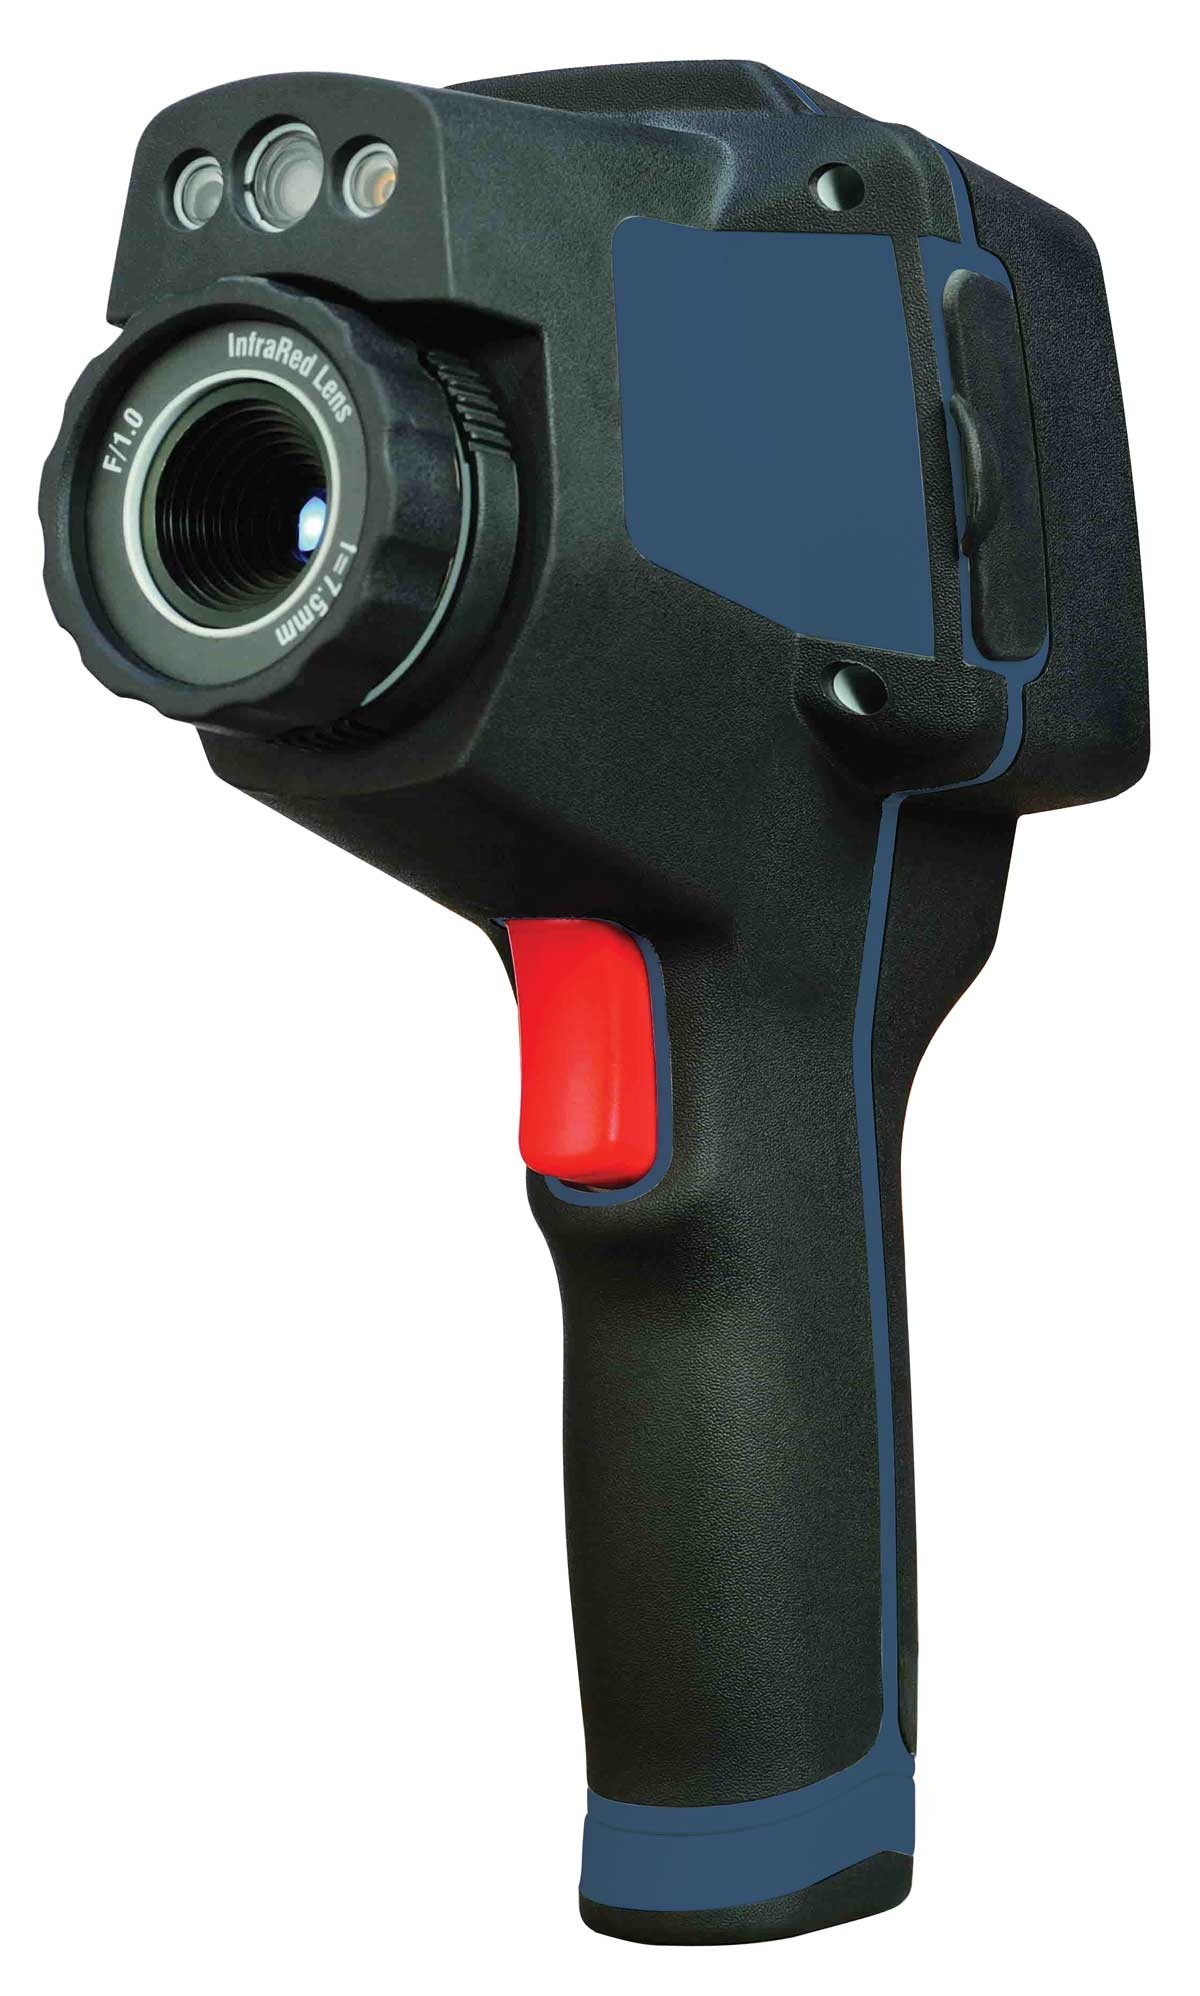 REED R2100 Thermal Imaging Camera, 19,200 Pixels (160 x 120)-REED R2100 3